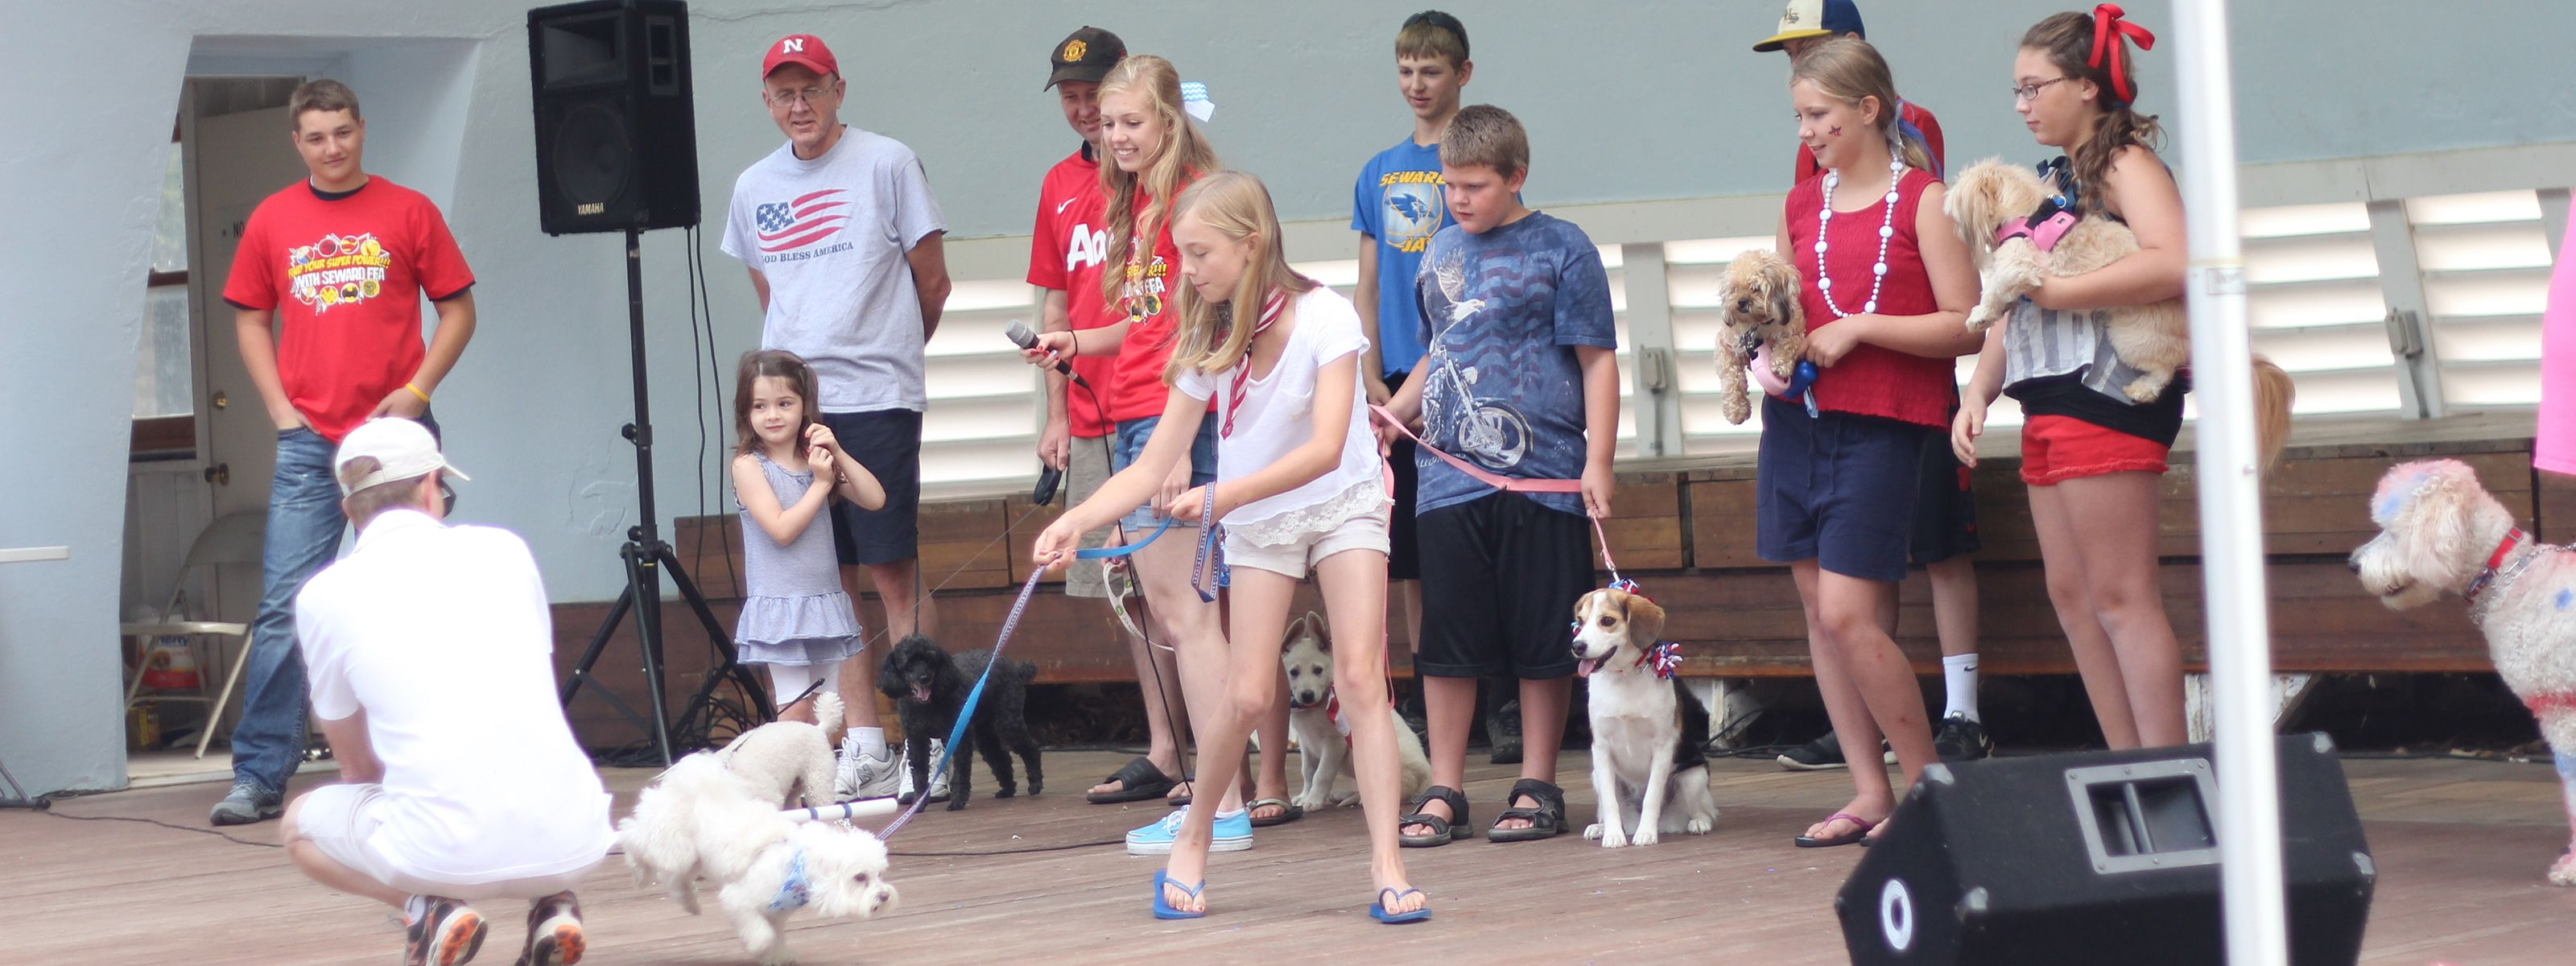 July 4th Pet Parade in Seward, Nebraska